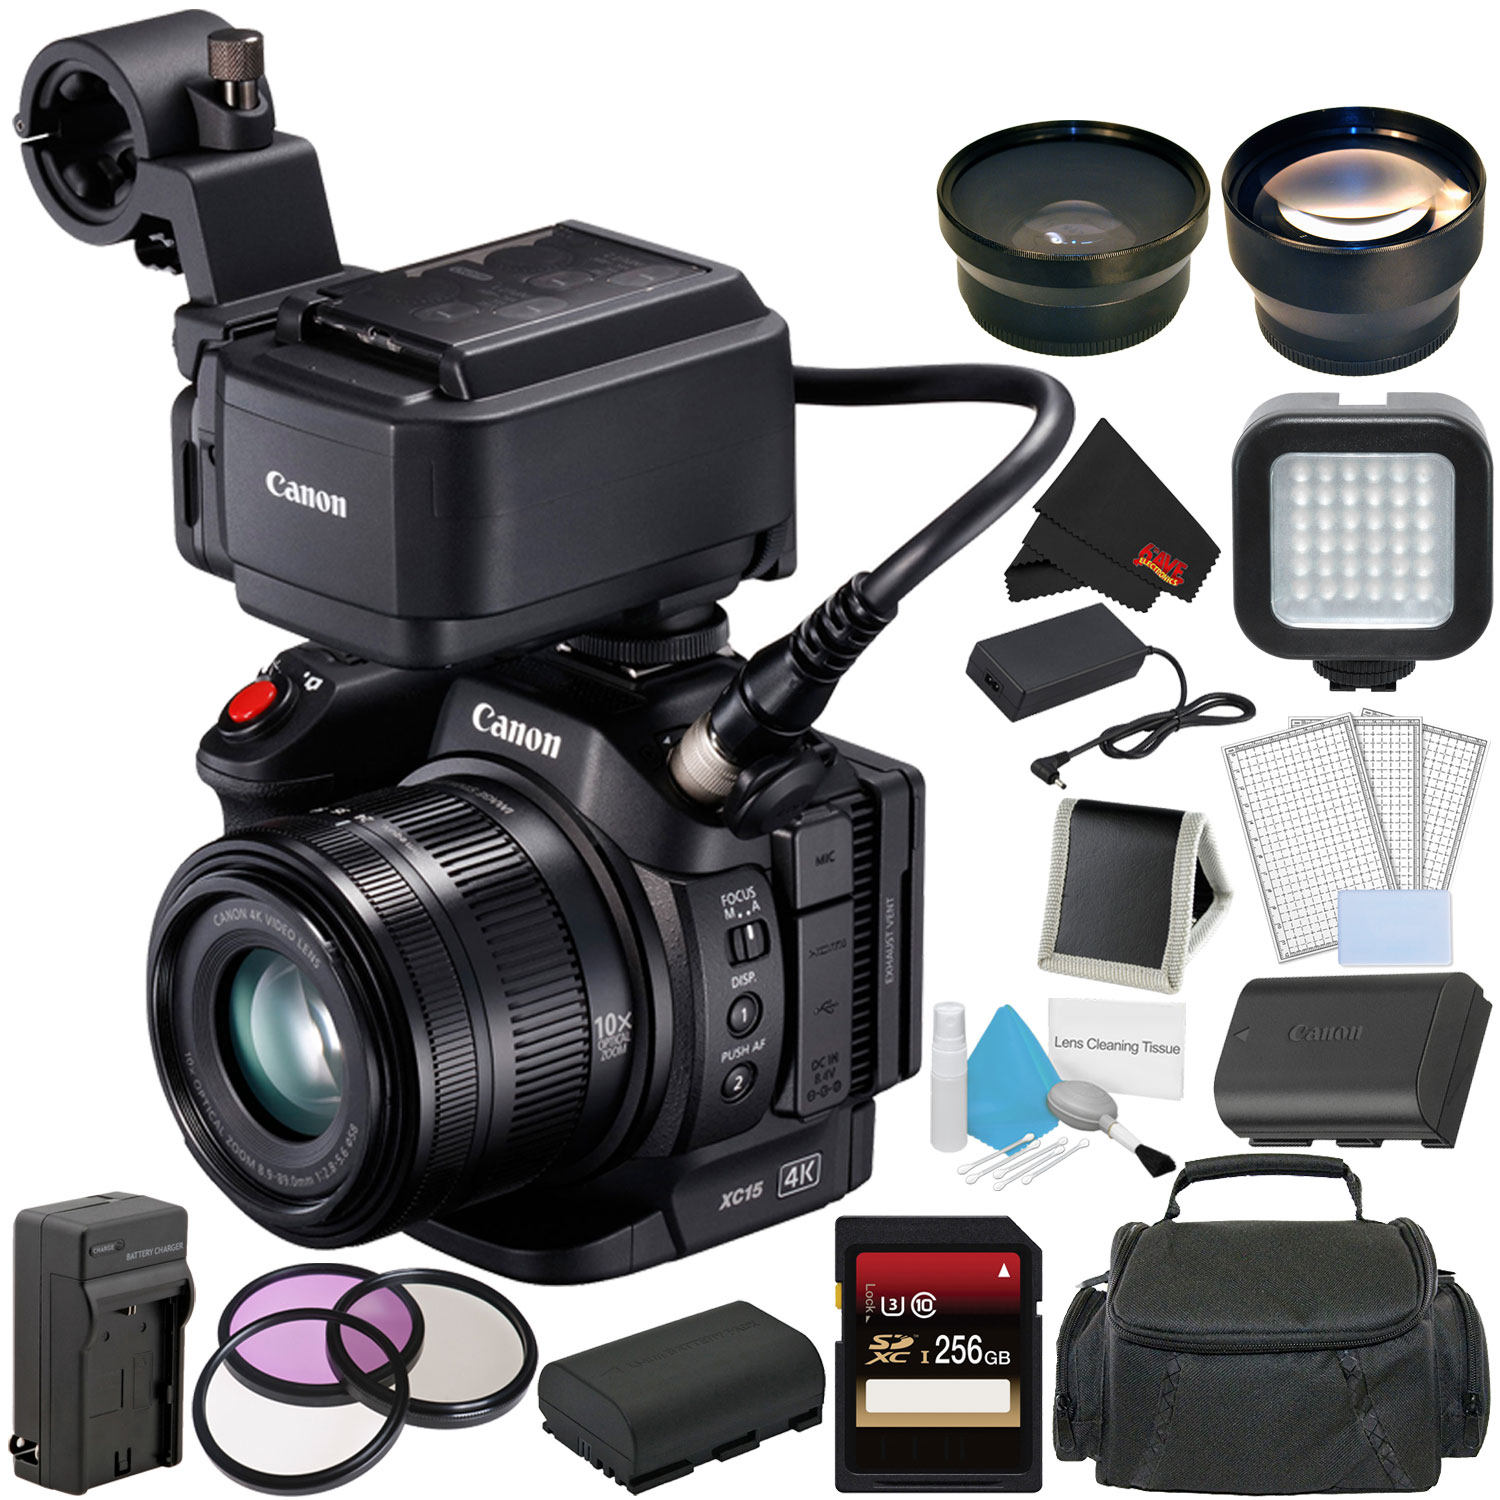 Canon XC15 4K Professional Camcorder Bundle with 256GB Memory Card + Spare Battery + Spare Charger + Wide Angle Lens + Carrying Case + More